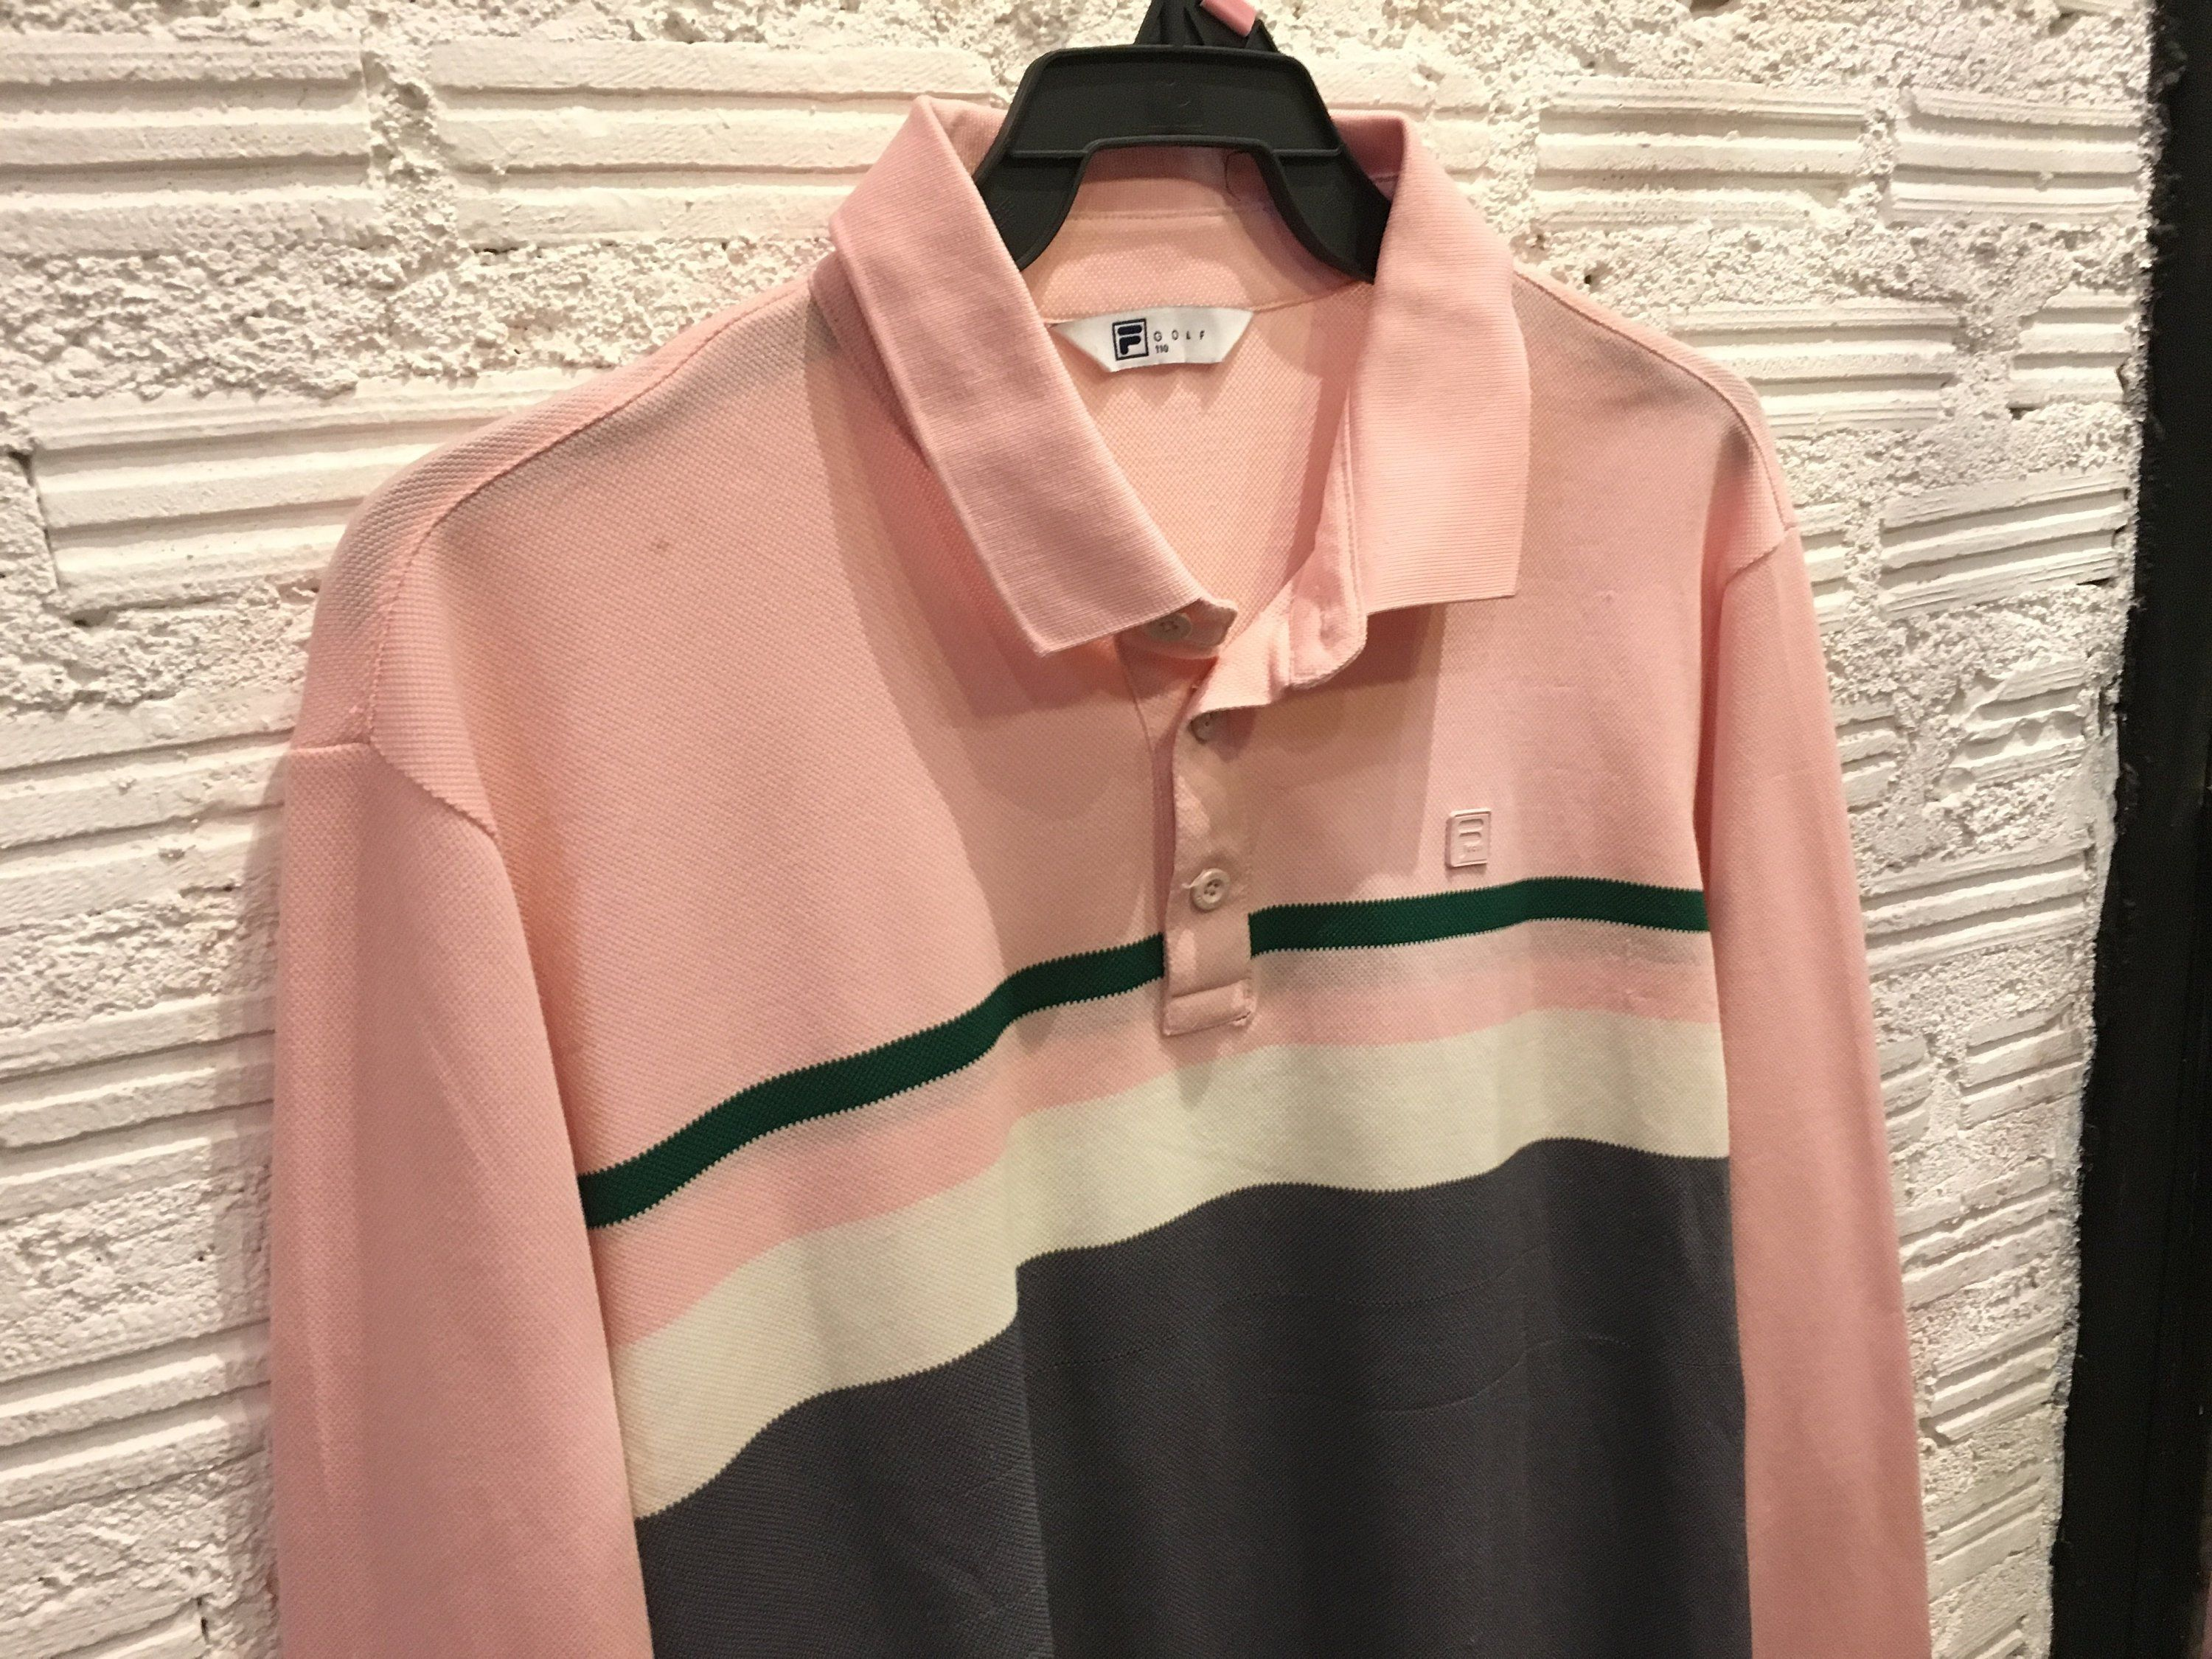 cf9191bd Vintage Fila polo shirt long sleeve color block multi color striped  embroidered logo Pink pastel Size L Excellent condition by AlivevintageShop  on Etsy